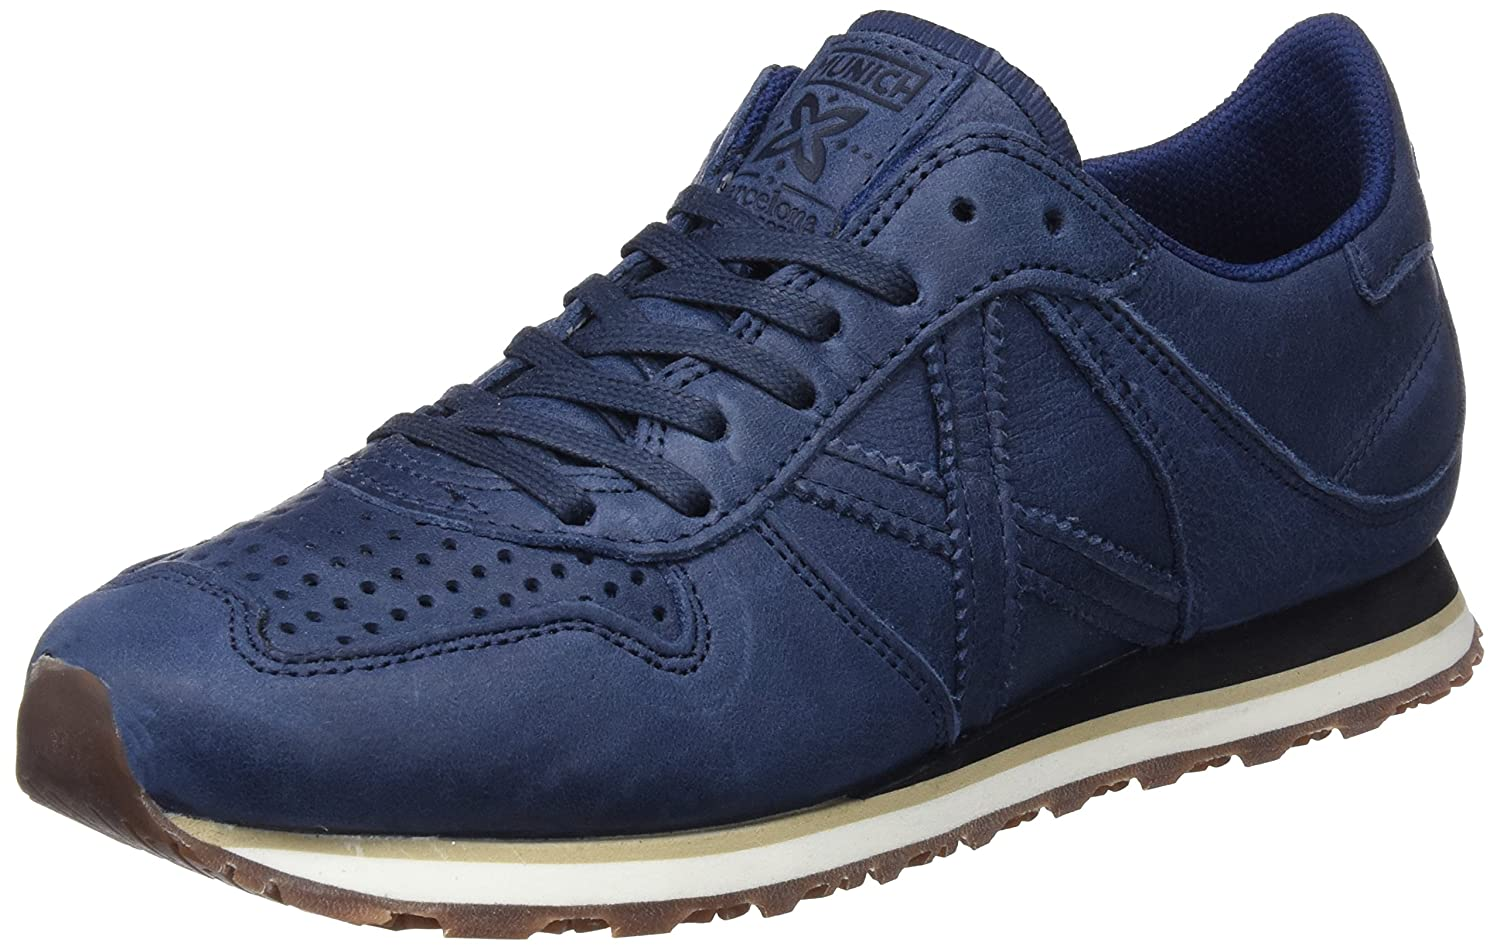 TALLA 40 EU. Munich Massana, Zapatillas Unisex Adulto